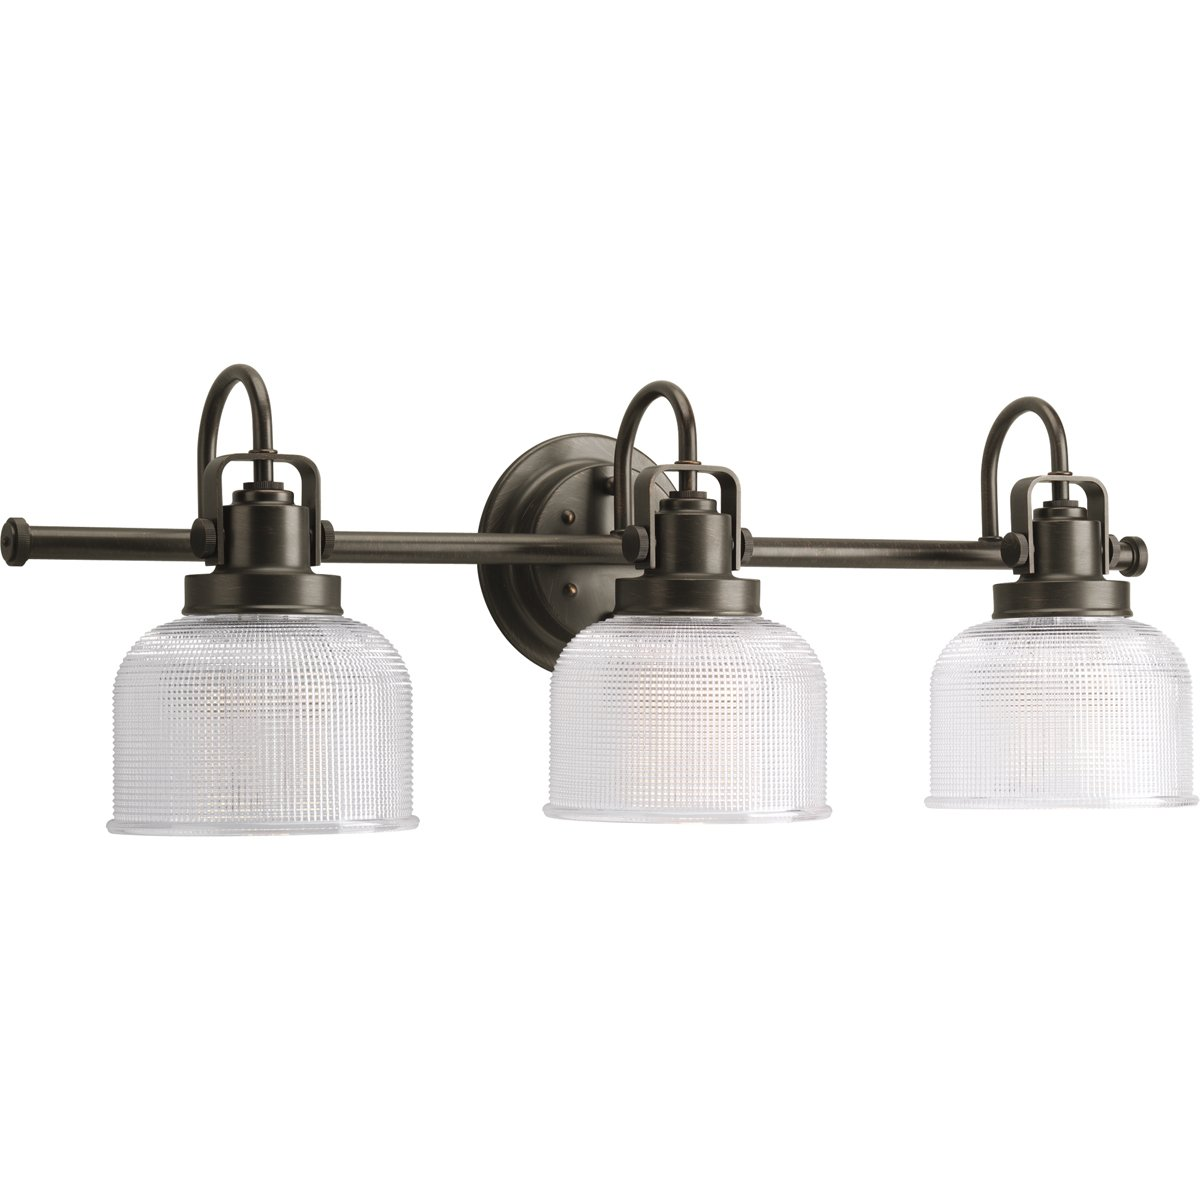 Progress Lighting P2992-74 Archie Three Light Bath Vanity, Venetian Bronze Finish by Progress Lighting